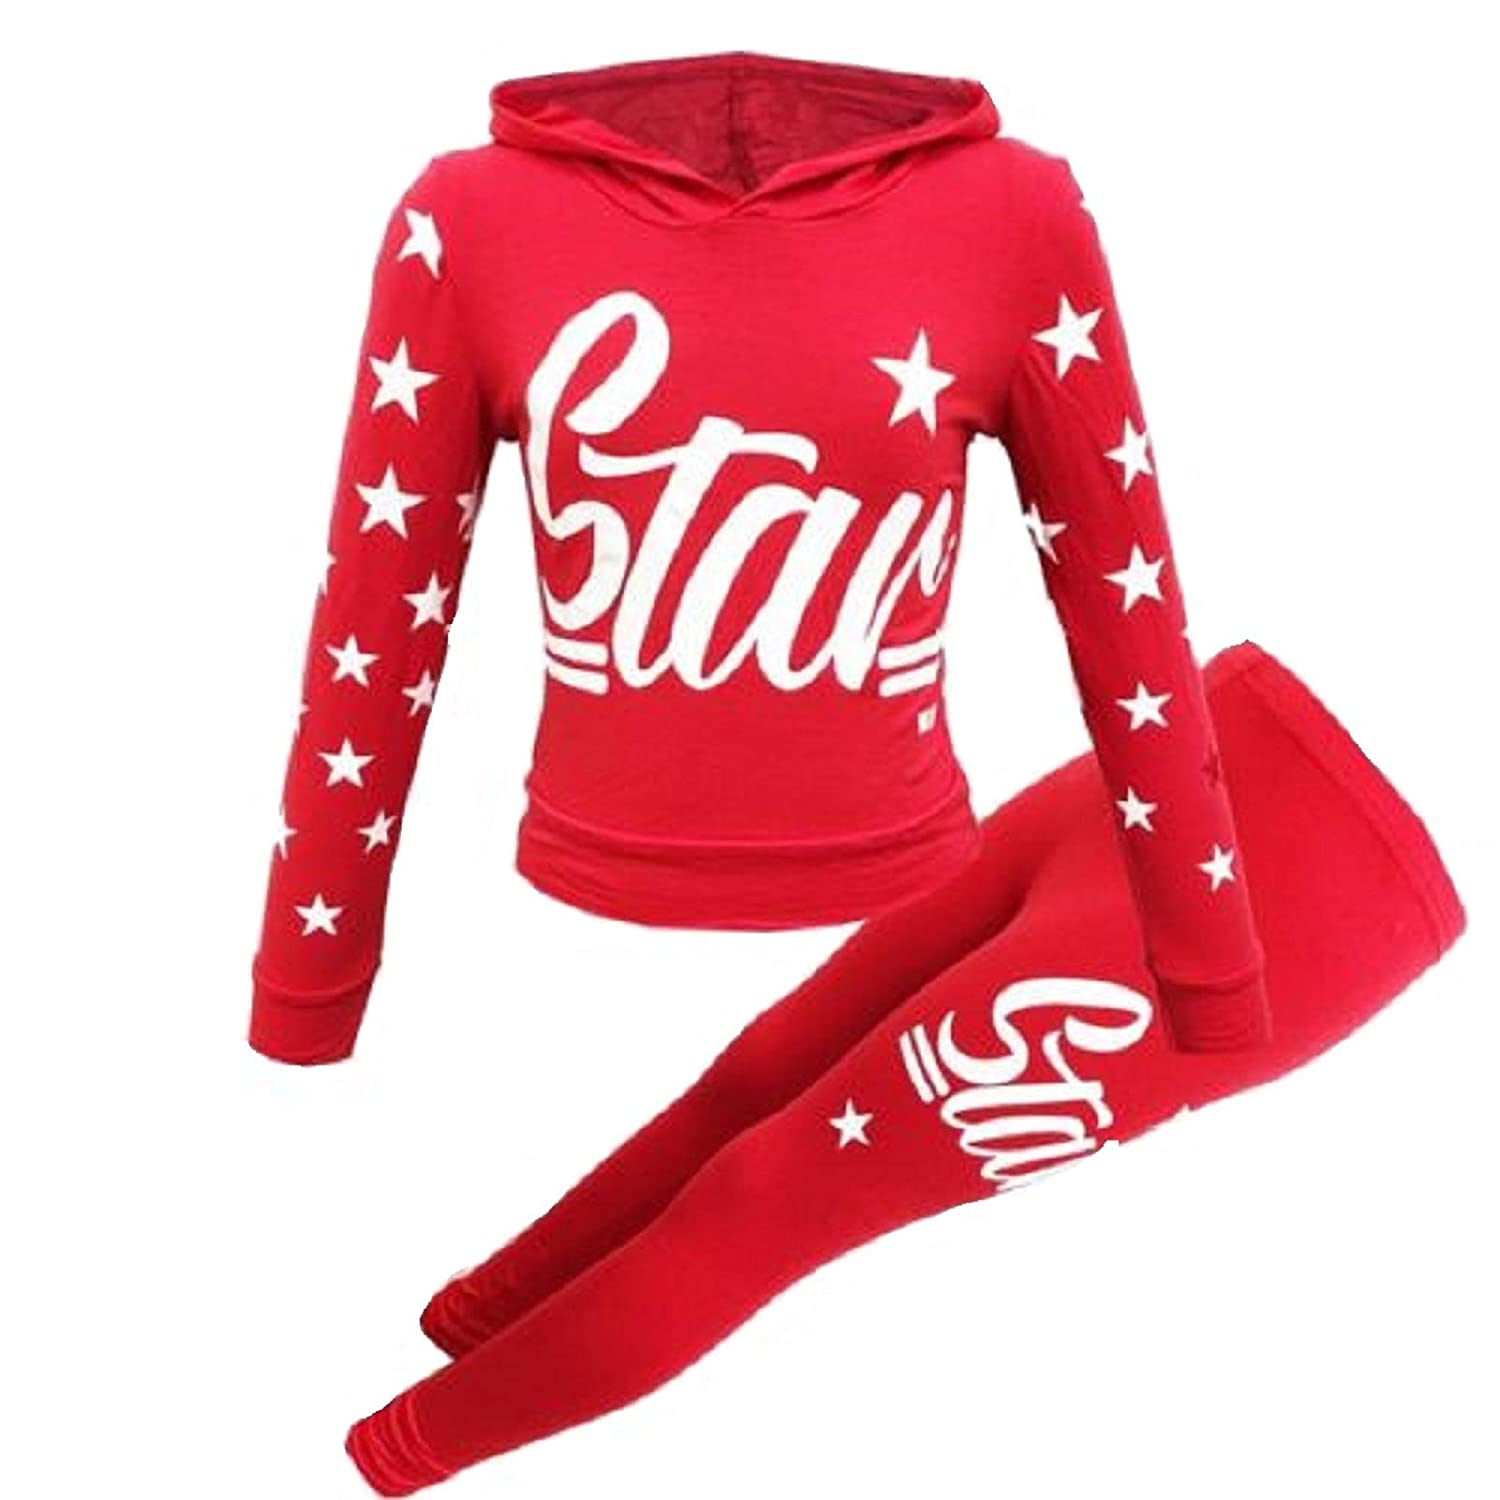 New Girls Star Print Hooded Top & Bottom Set Kids Tracksuit Loungwear UK Age 7-13 Years